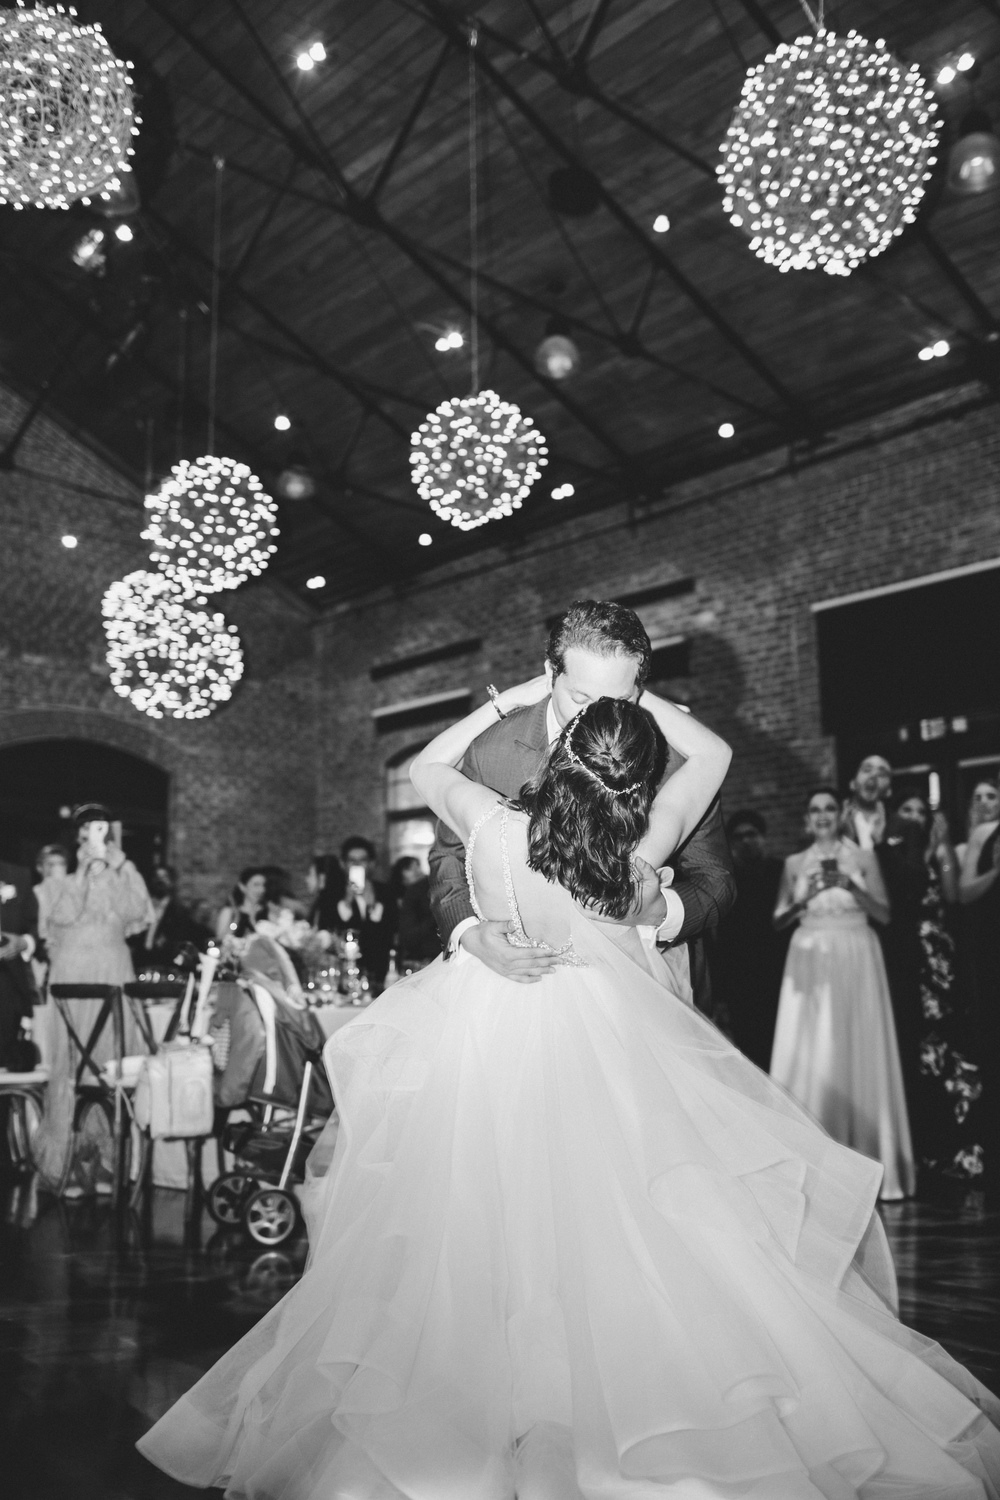 daniela-and-pedro-wedding-izzy-hudgins-photography-a-to-zinnias-whitfield-square-charles-h-morris-center-wedding-ivoyy-and-beau-bridal-boutique-dorie-hayley-paige-savannah-wedding-planner-savannah-bridal-boutique-savannah-weddings-56.jpg